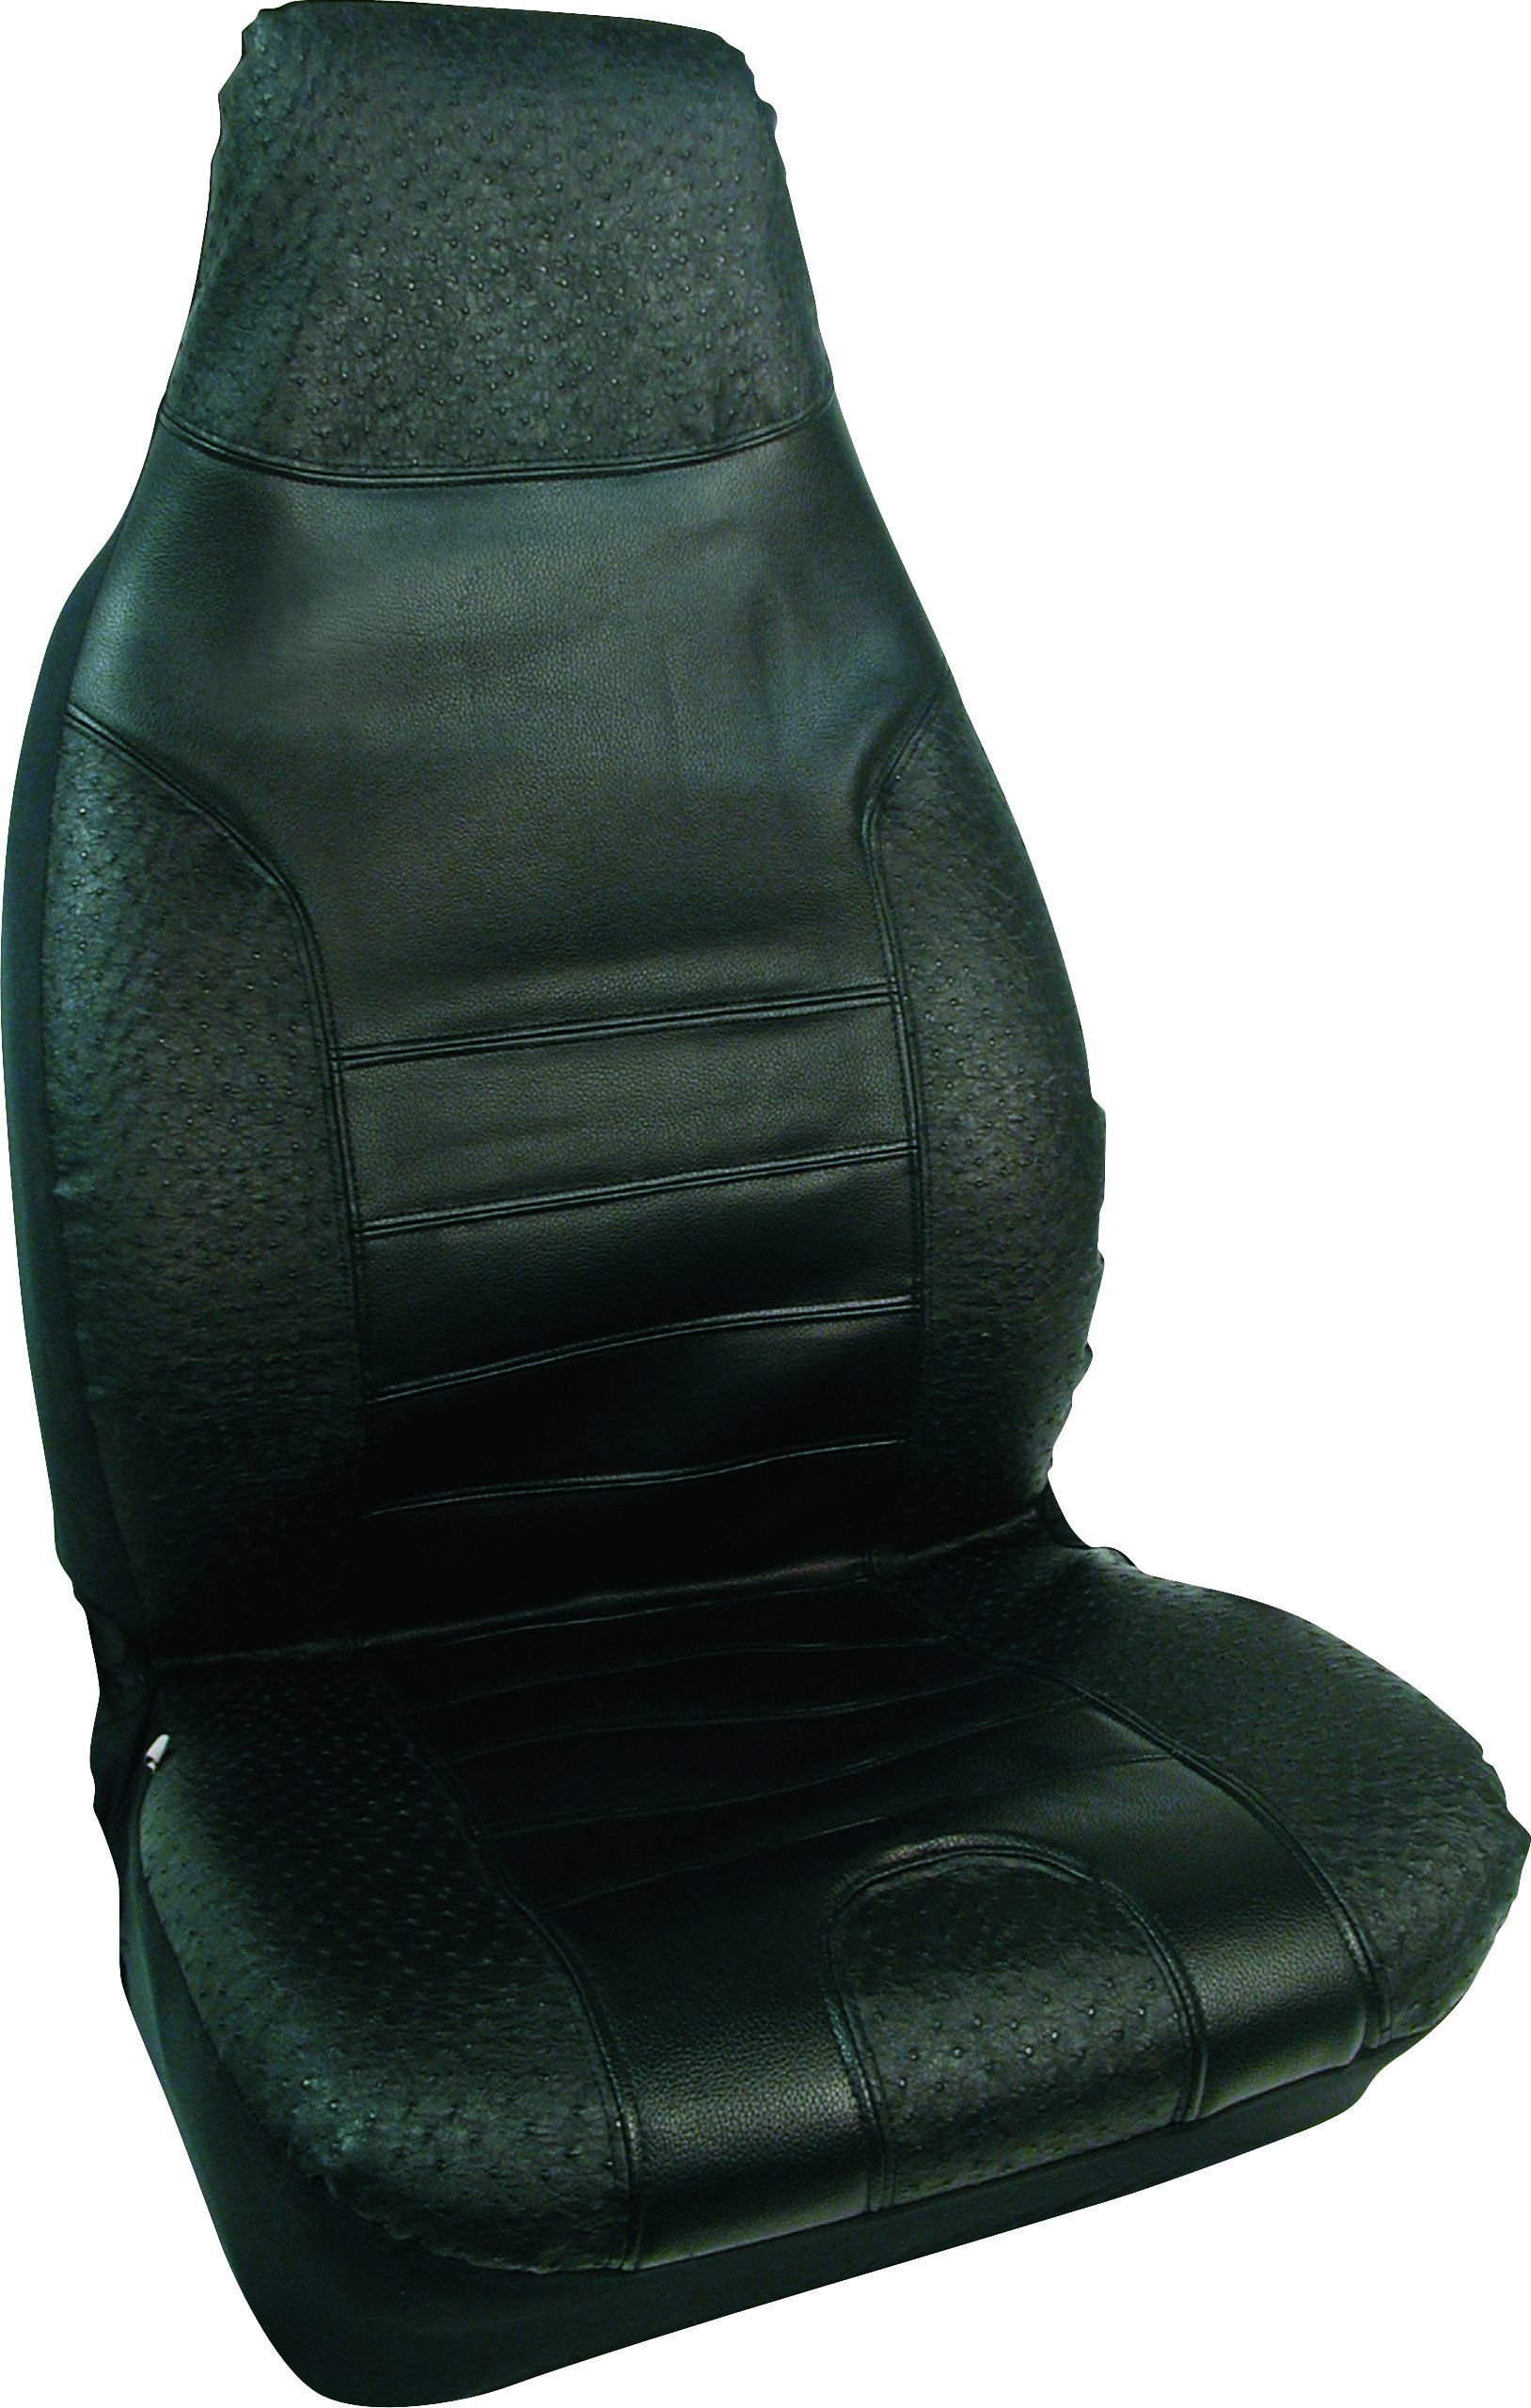 Bell Automotive 22 1 55441 8 Black Ostrich Seat Cover Click Image For More Details This Is An Affiliate Link Car Seats Seat Cover Carseat Cover